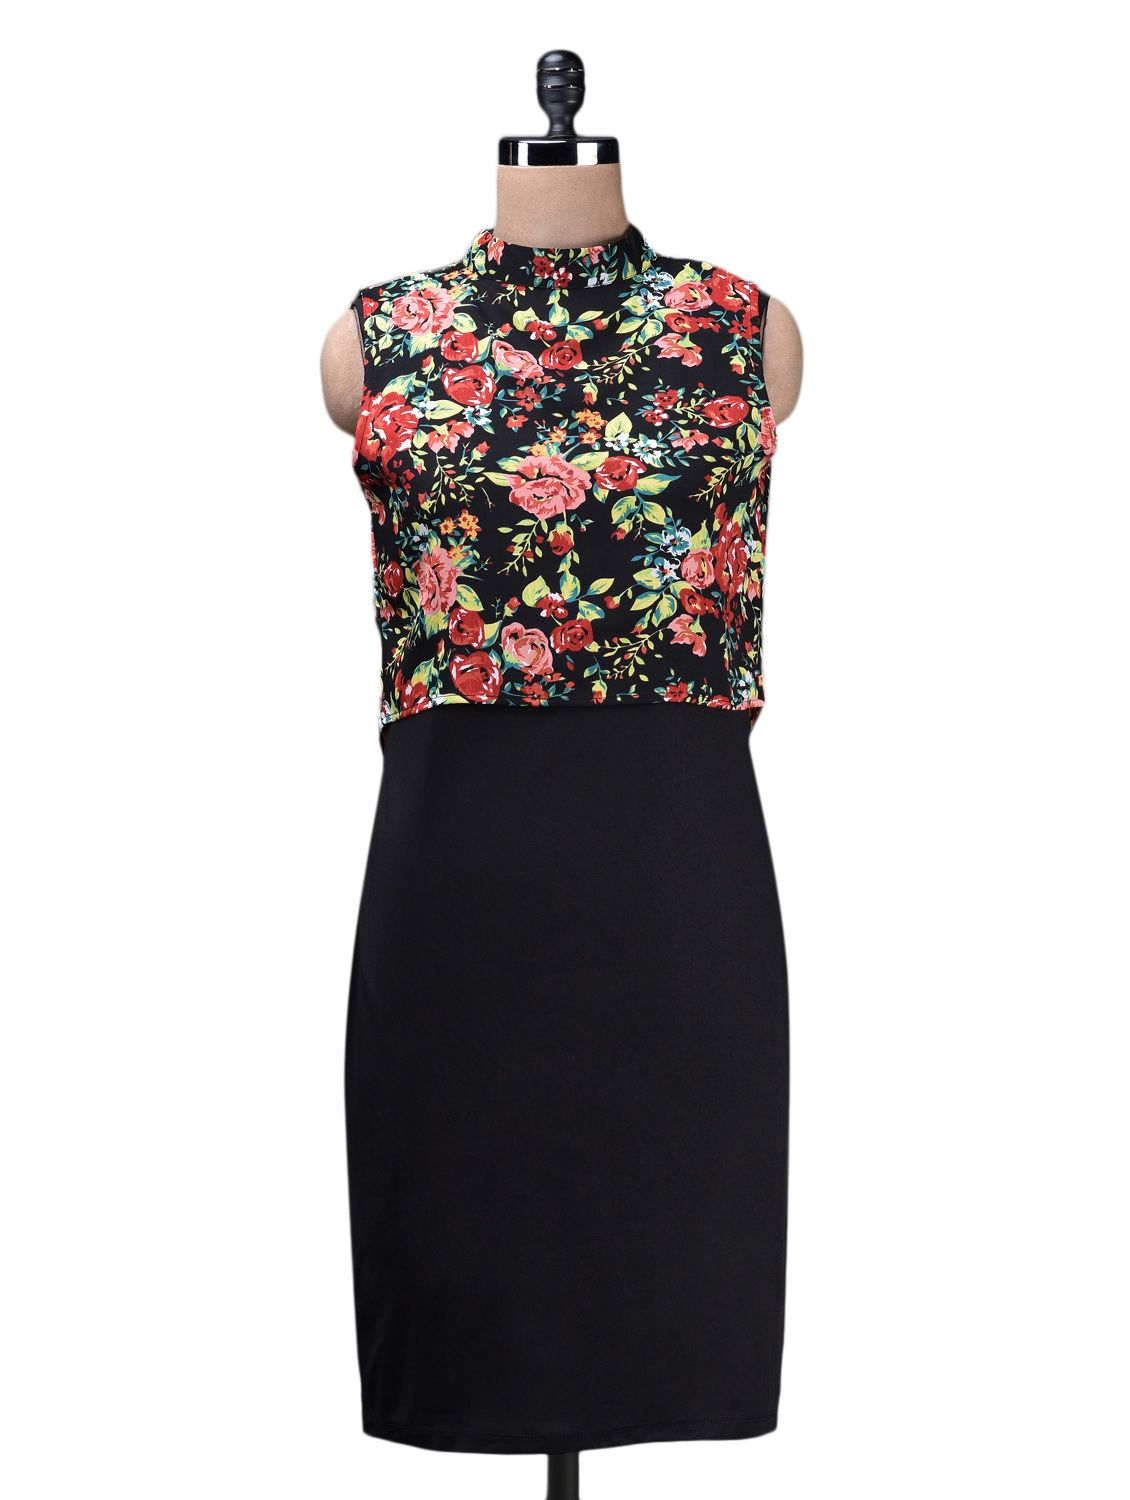 fba0c56c03a2c Sleeveless Floral Blouse Poly Knit Dress - Buy Quest Dresses For Women  Online in India - LimeRoad.com